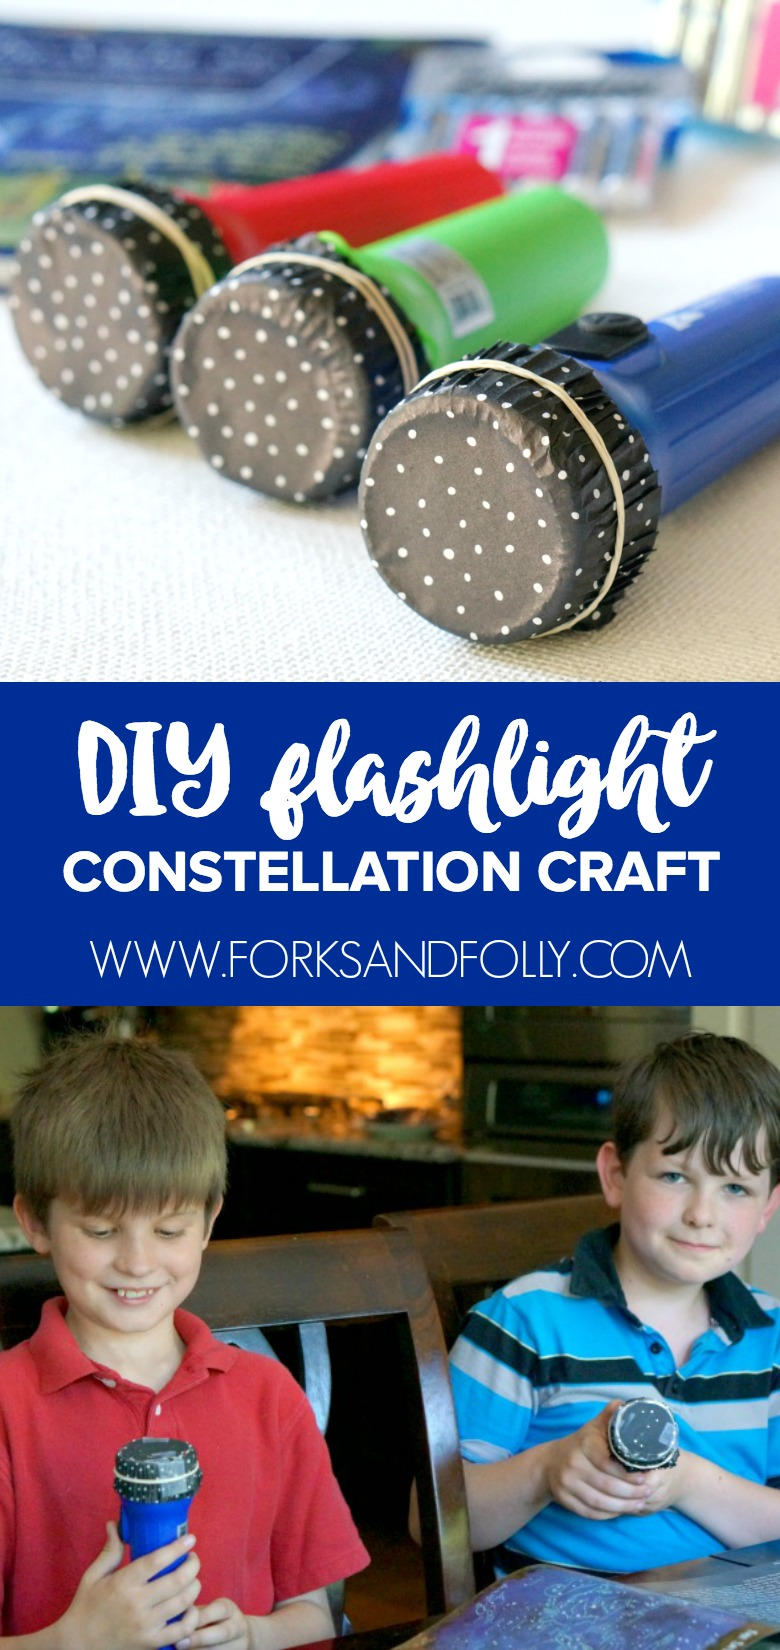 Flashlight DIY Constellation Craft and Stargazing fun with Forks and Folly's Kitchen Stories featuring a favorite book of ours, 'The Night Sky.""